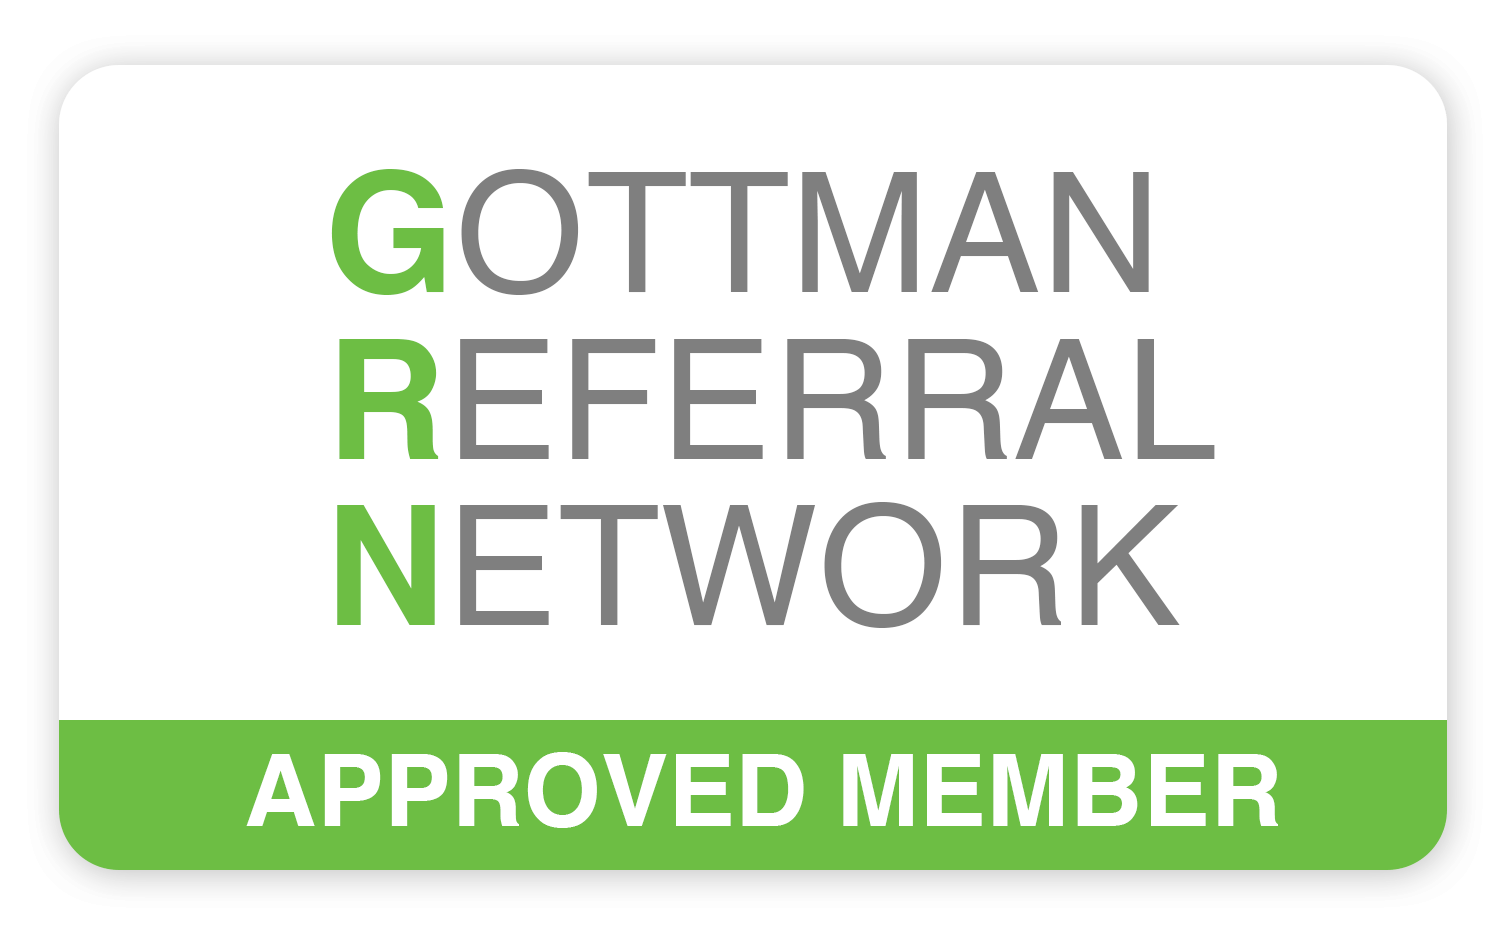 Andi Green's profile on the Gottman Referral Network